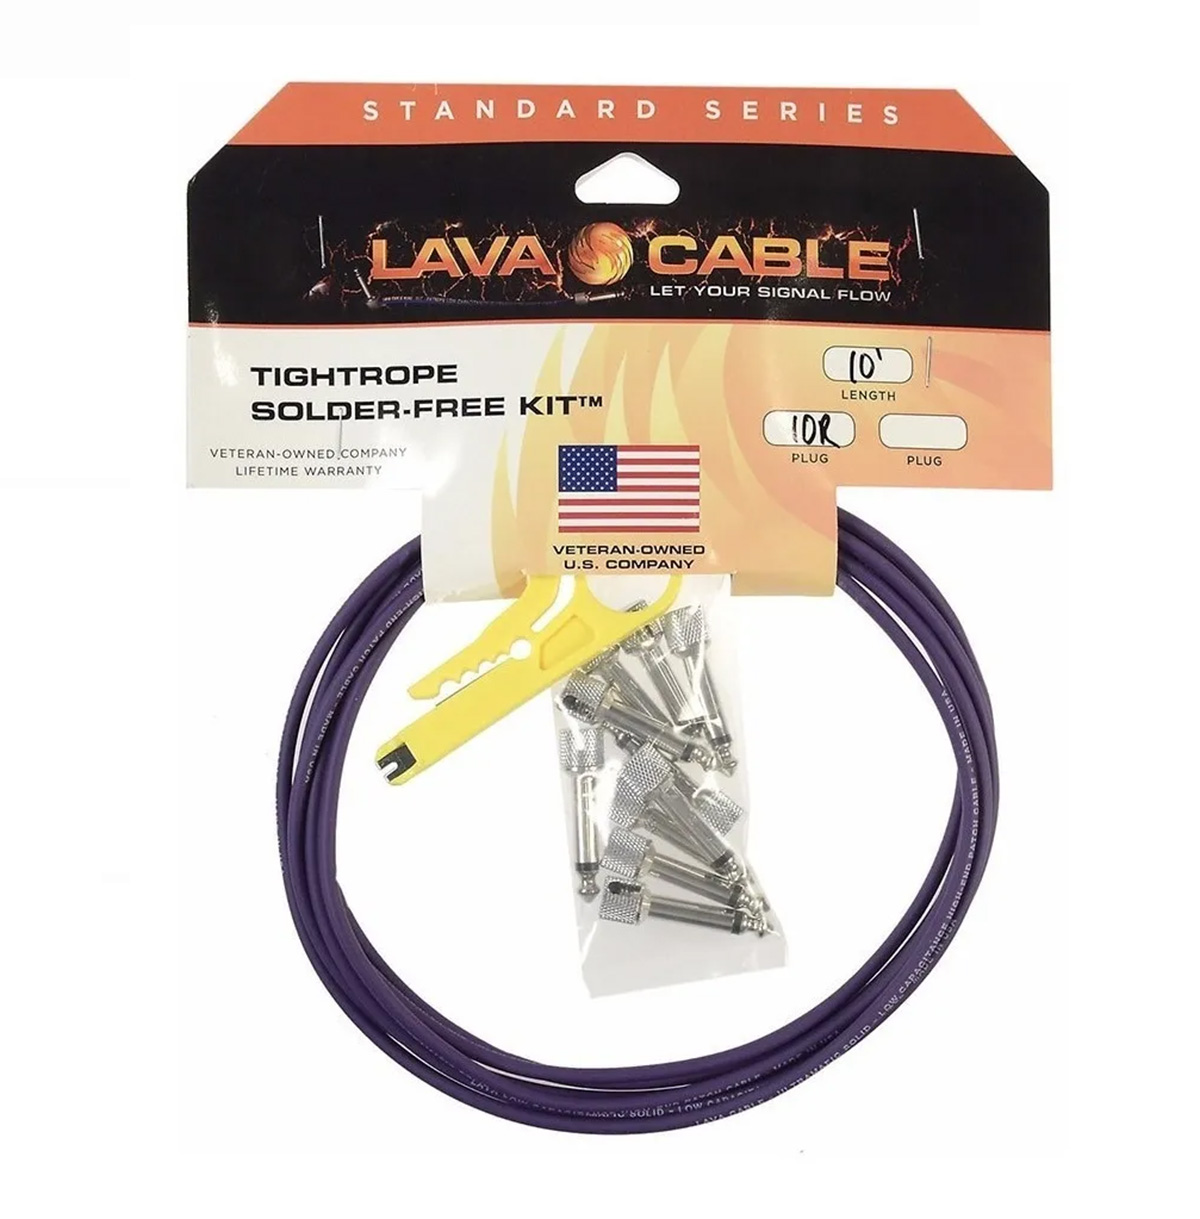 KIT DE CABOS PEDALBOARD LAVA CABLE LCTRKTB TIGTROPE PEDALBOARD CABLE KIT